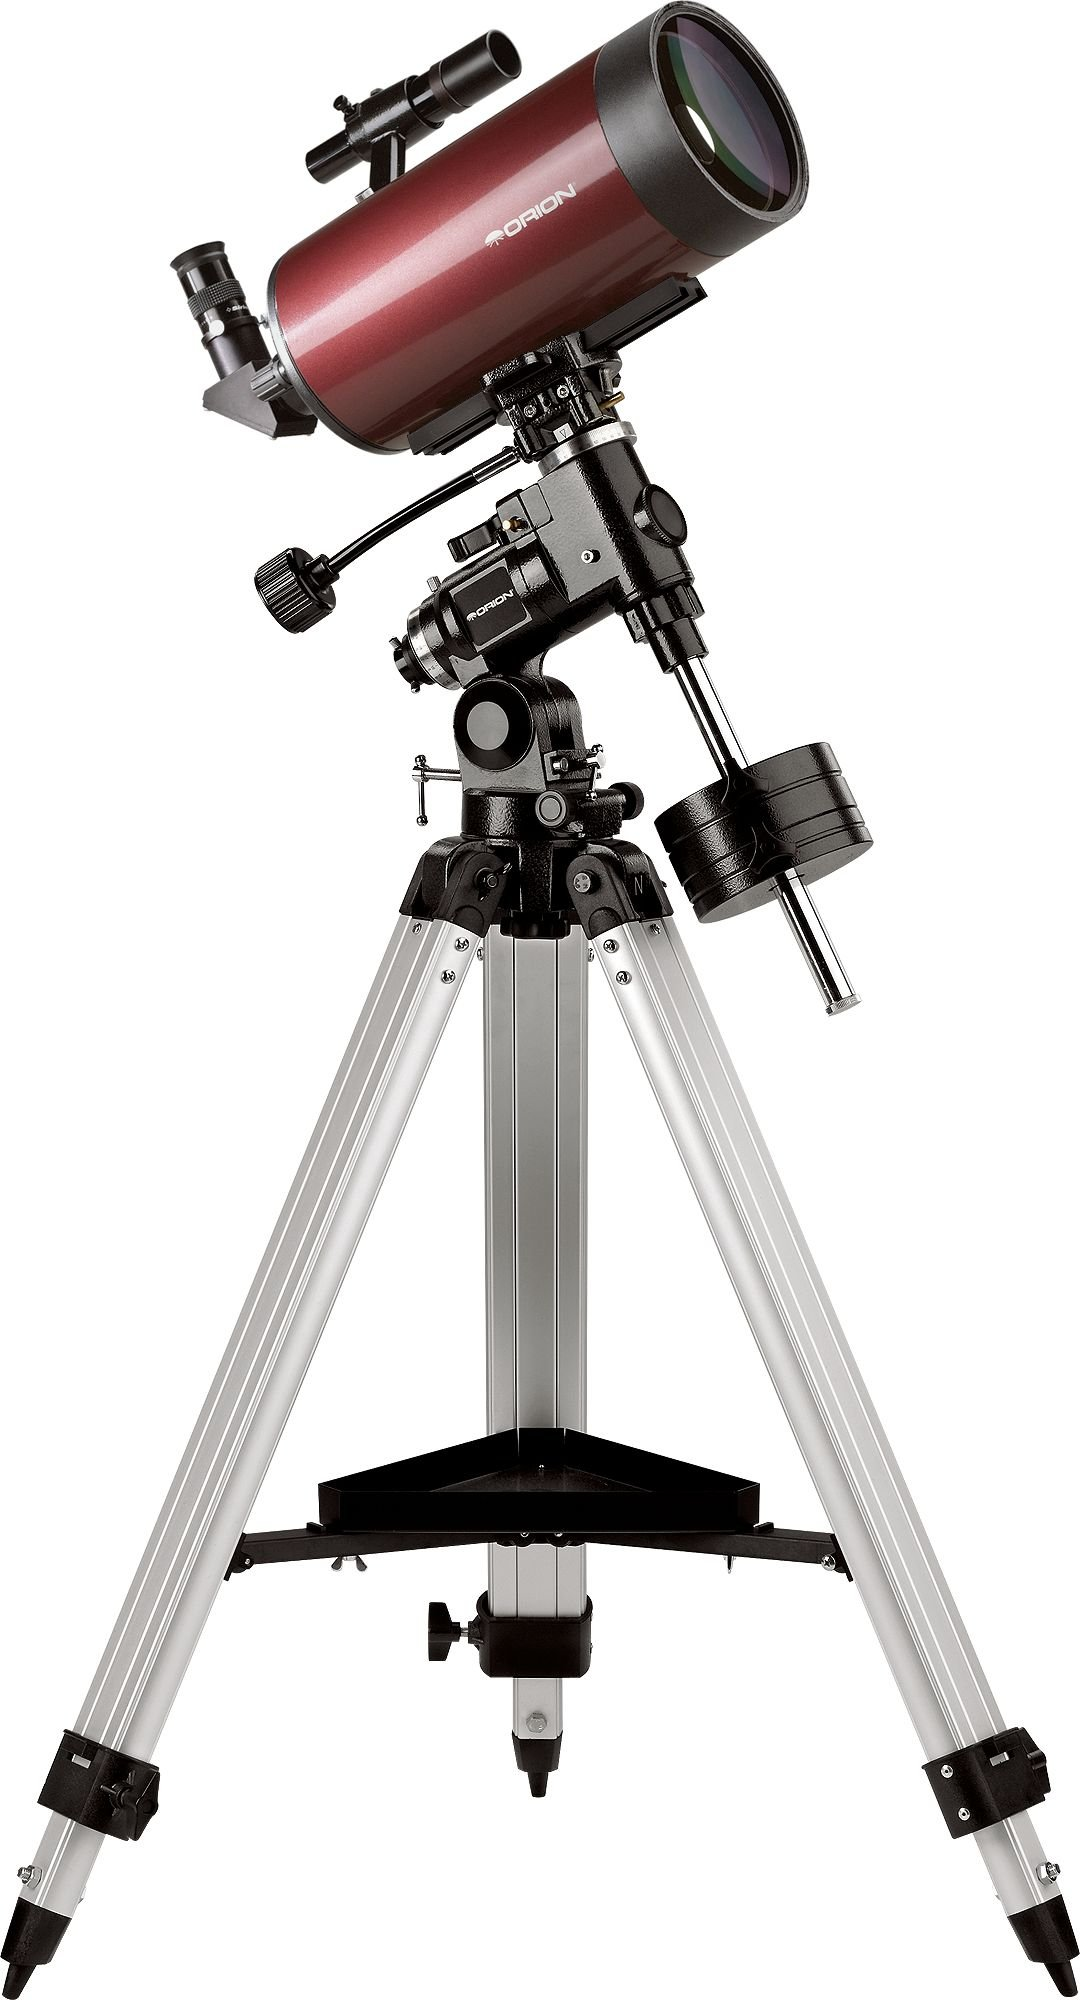 Orion 9826 StarMax 127mm Equatorial Maksutov-Cassegrain Telescope by Orion